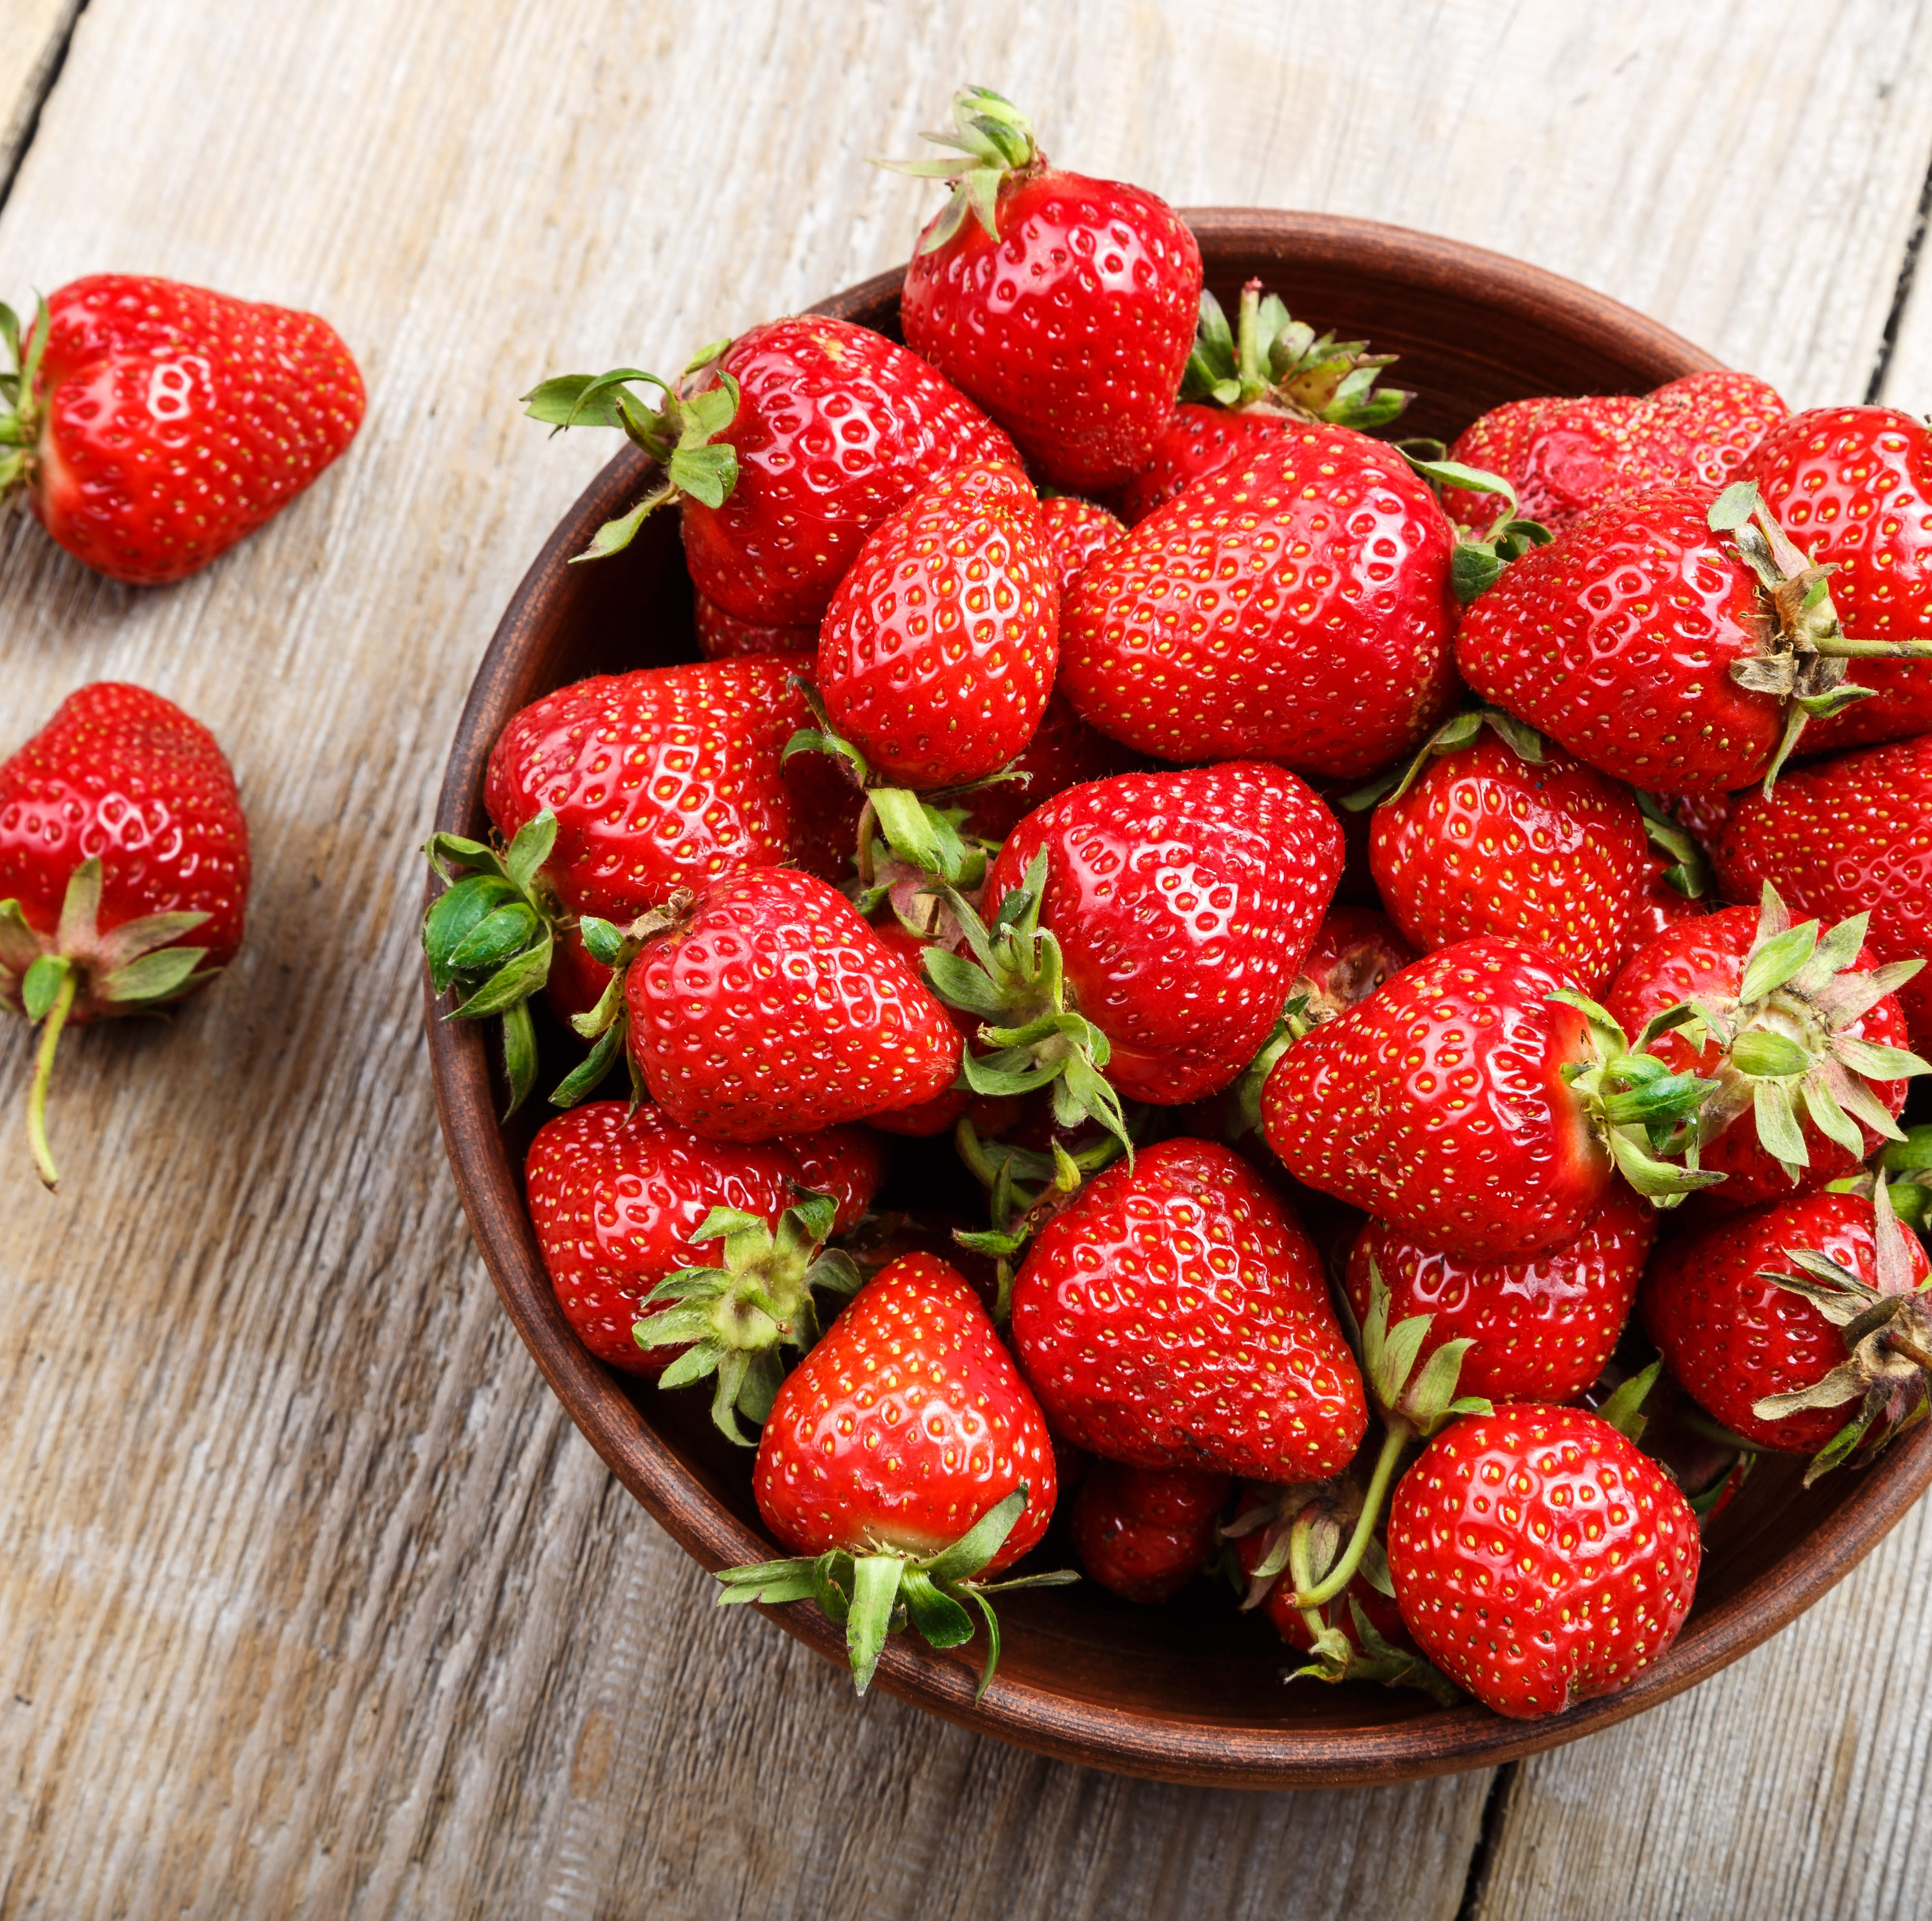 Strawberries, spinach top 'Dirty Dozen' list of fruits and vegetables with most pesticides